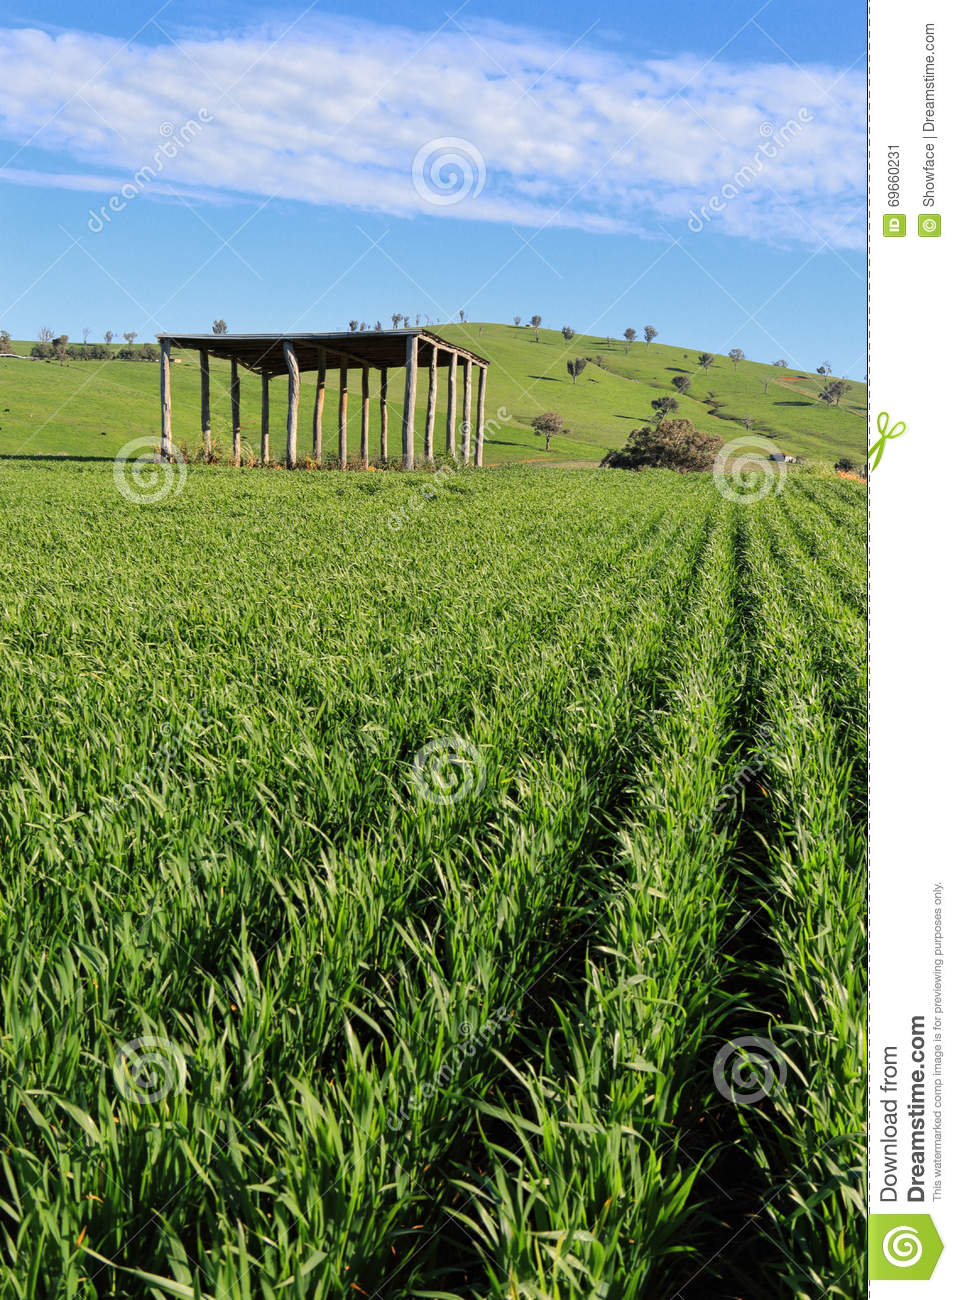 Farmers Crops Agriculure Stock Photo